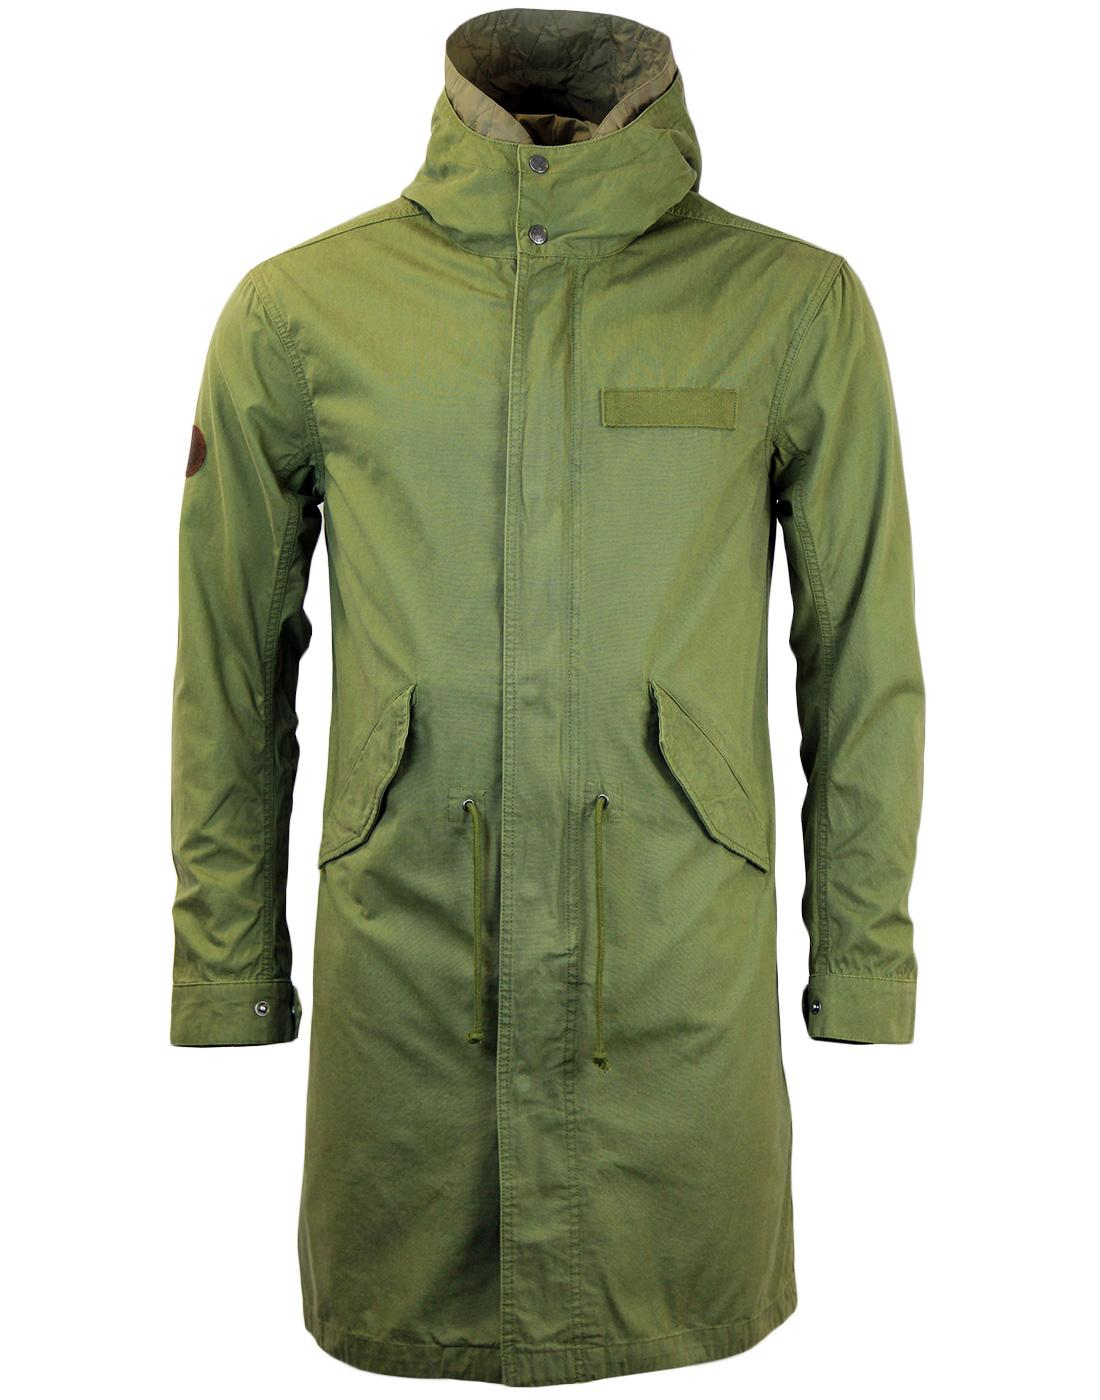 Winchester PRETTY GREEN Retro Mod 60s Parka Jacket